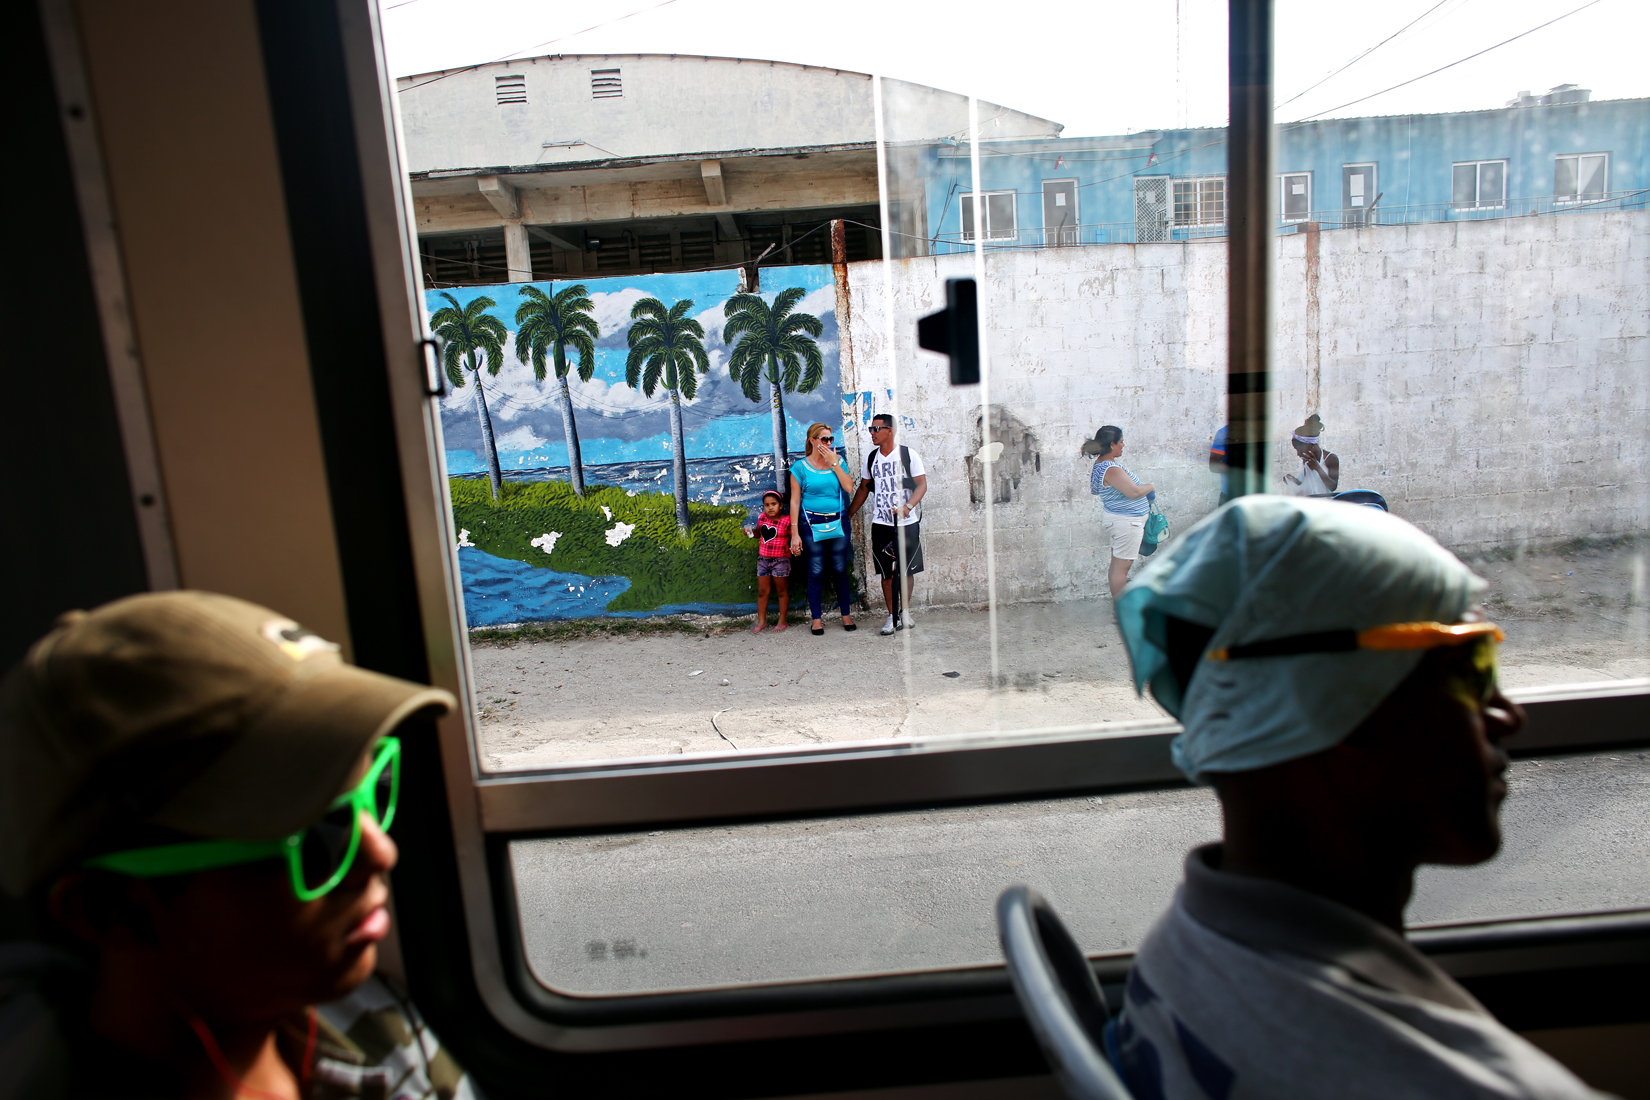 A bus transports its passengers to Mariel, a port city whose tranquil appearance belies its important place in both the history and future of Cuban-American interaction. Here is where the Russian navy unloaded its nuclear warheads in the 1962 Cuban missile crisis, as well as the site of the famous Mariel Boatlift of 1980, when 125,000 Miami-bound emigres fled the island during a 6-month lift on travel restrictions to the U.S.Now, Mariel's largest development project in history - a deepwater container port and a free-trade zone - aims to attract foreign investment, especially that of the U.S. A critical ingredient for its success will be the status of the U.S. embargo against Cuba, in place for more than 50 years, but now under speculation of being lifted.